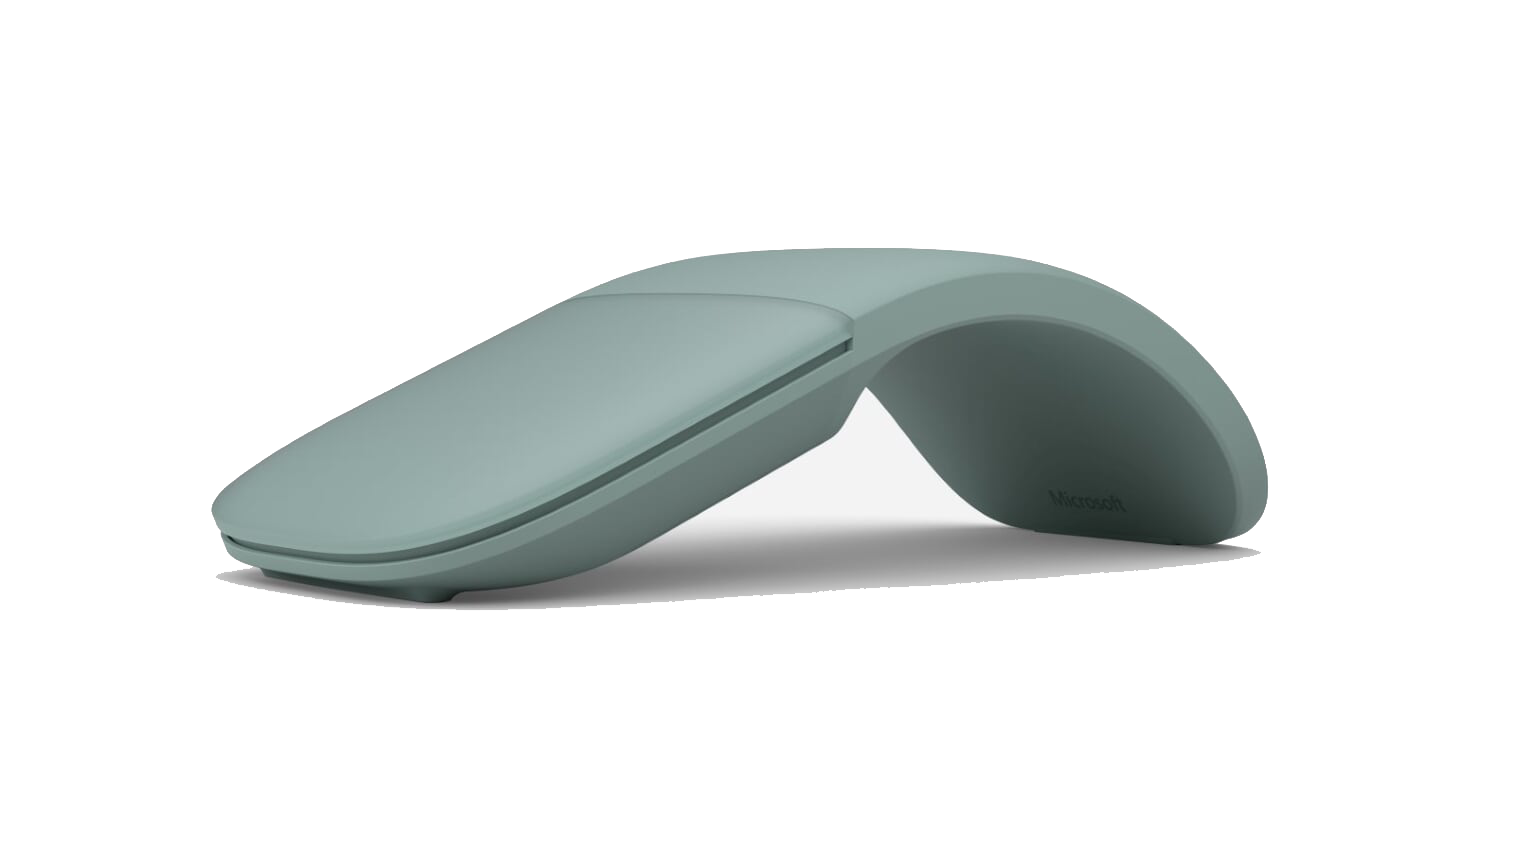 Microsoft Arc Mouse Bluetooth 4.0, Sage